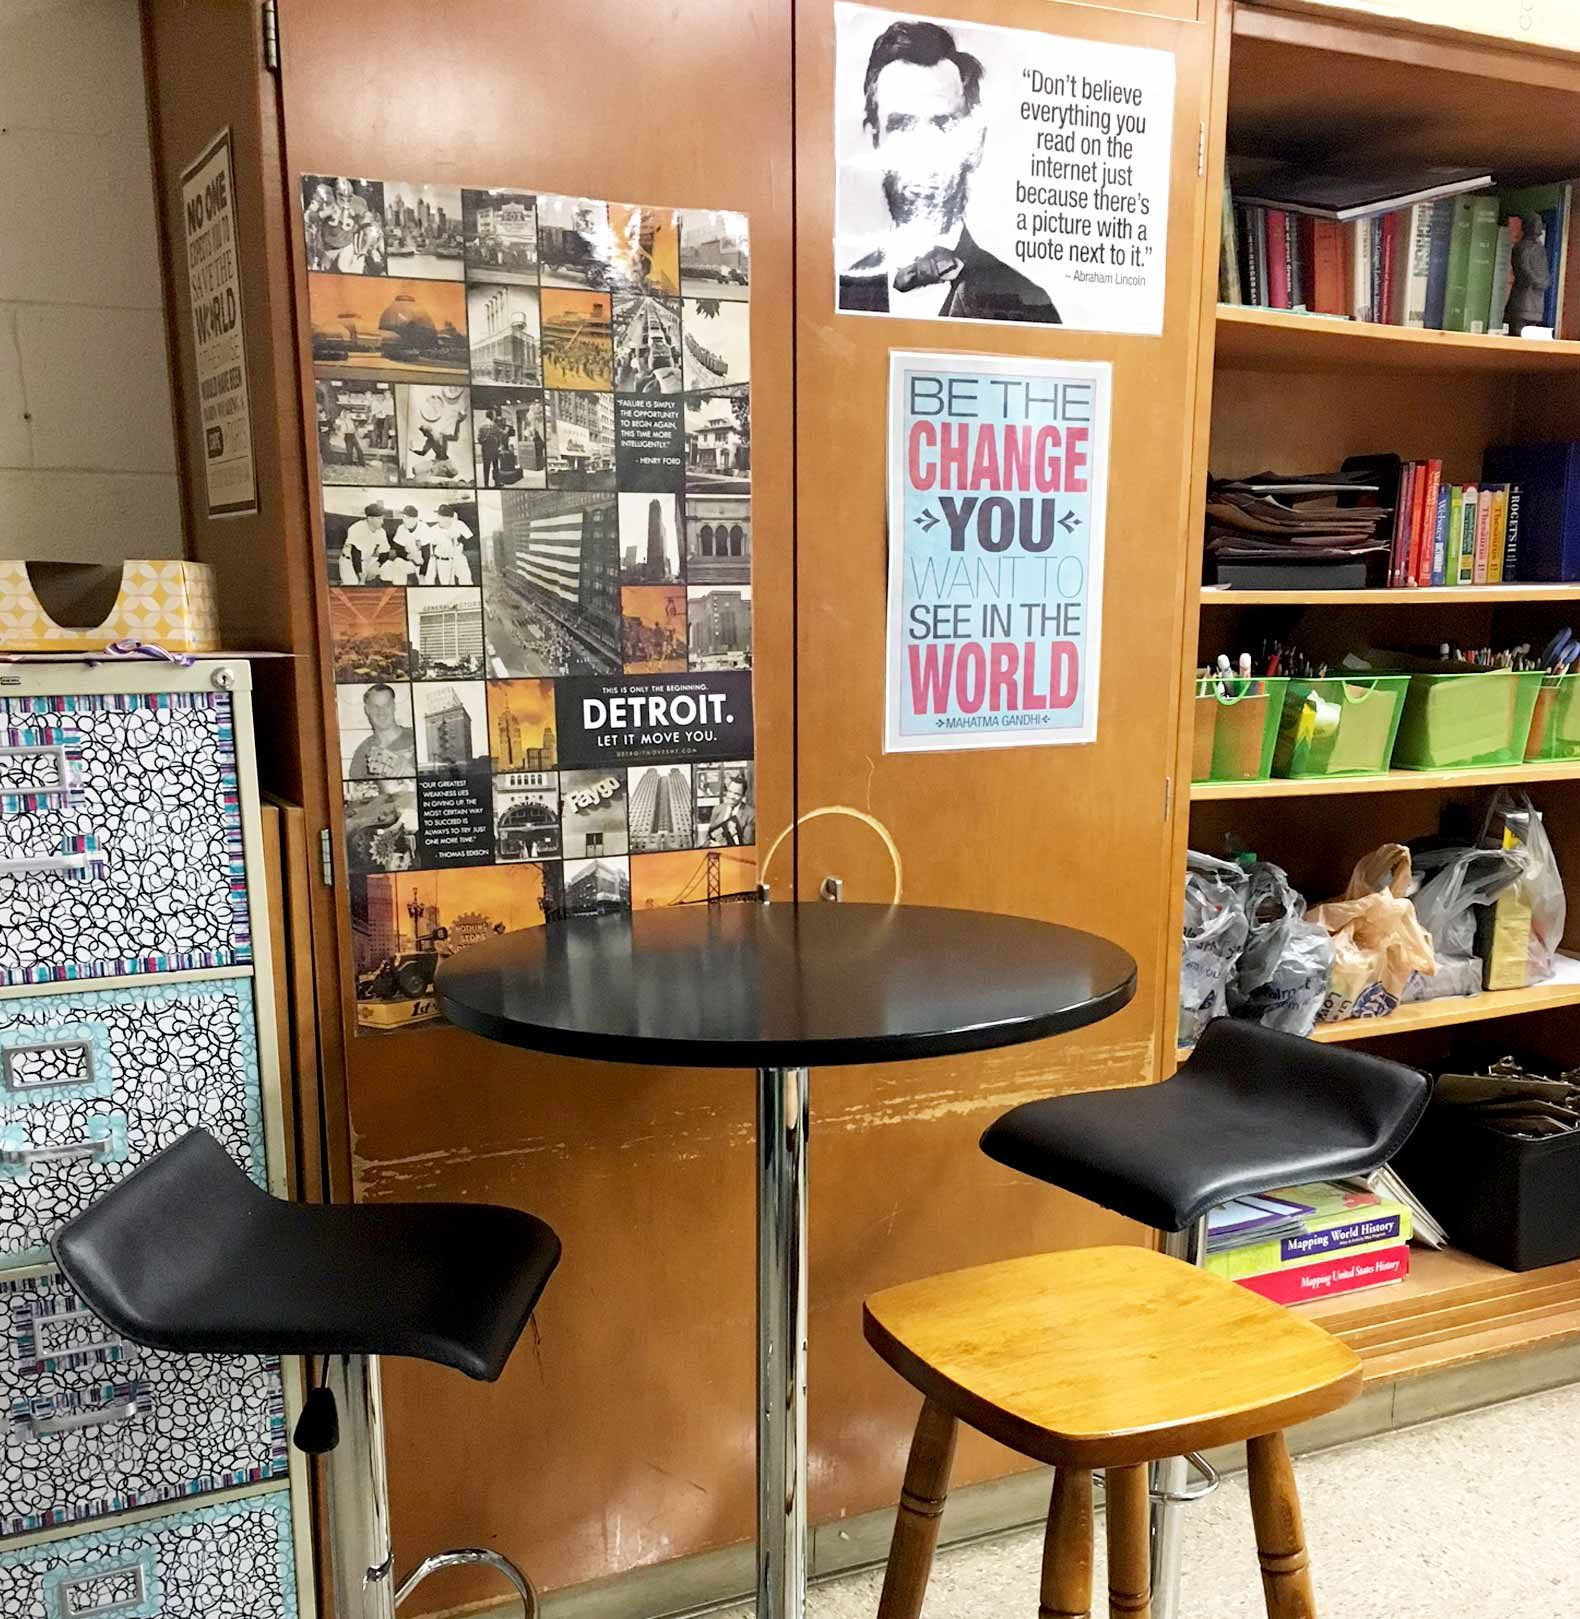 Caralis got most of her furniture—like the stools and bar table here—through a DonorsChoose campaign and garage sales. Having different table heights for standing and sitting is a common feature in flexible classrooms.